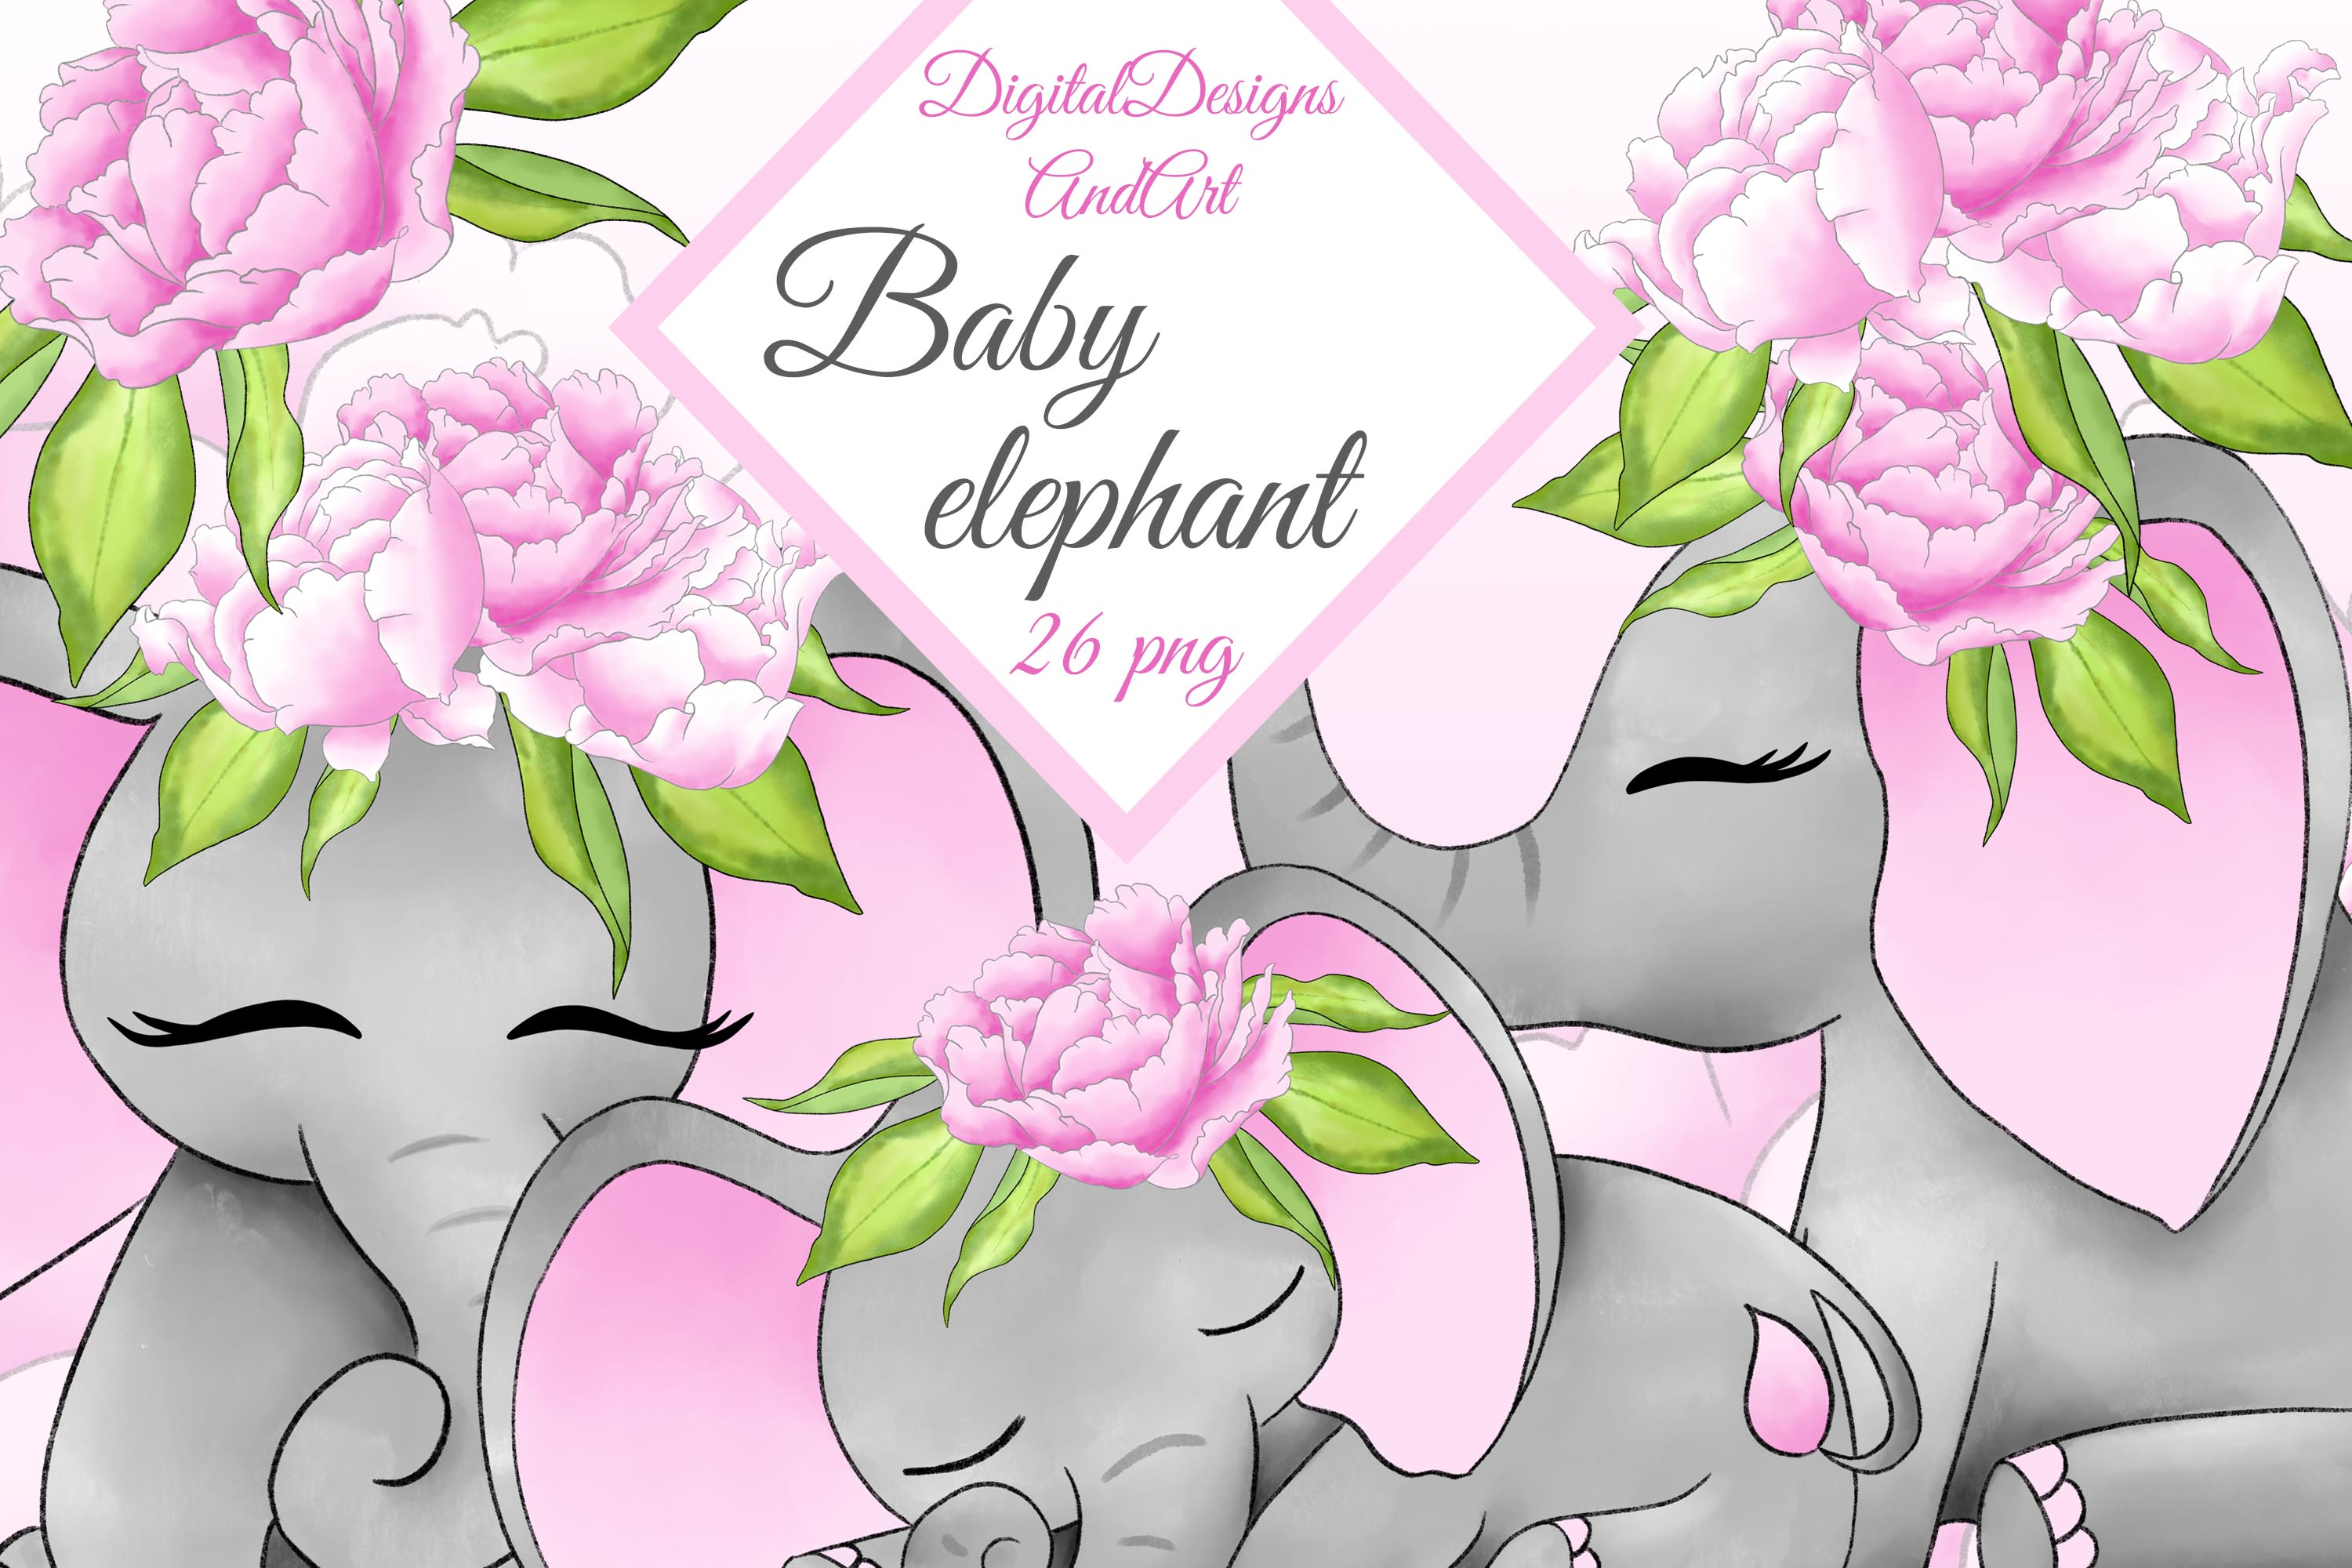 Baby elephant in pink example image 1